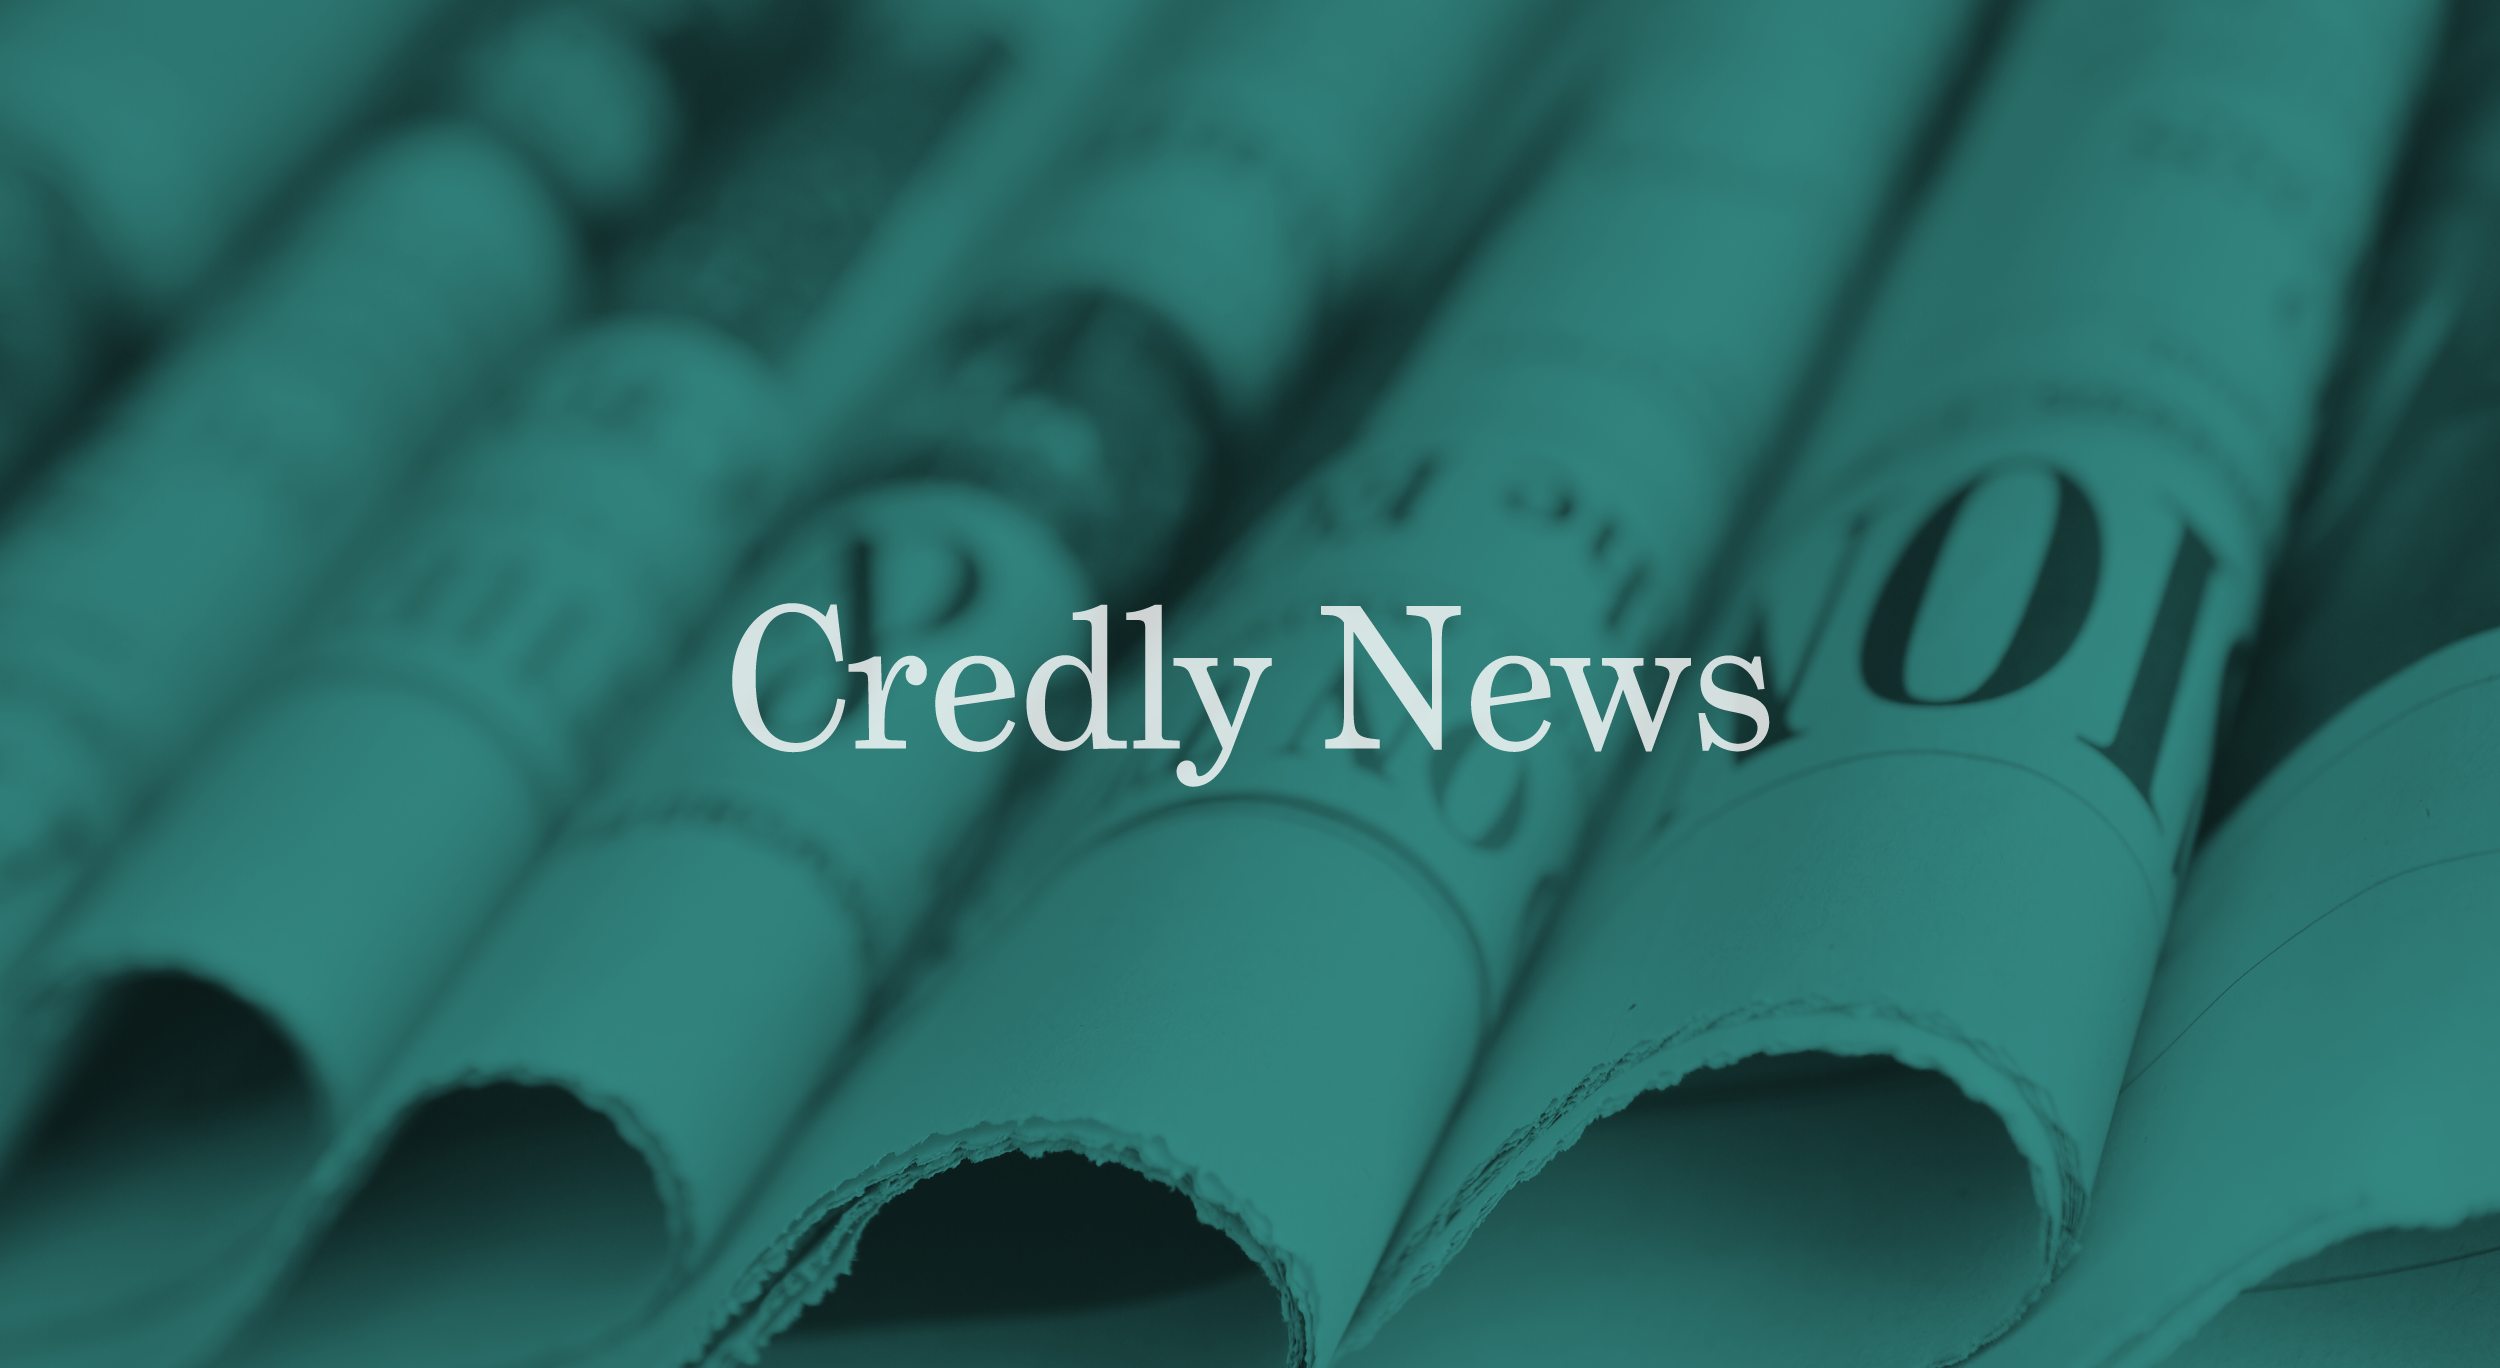 Image of newspapers with text that says Credly News.